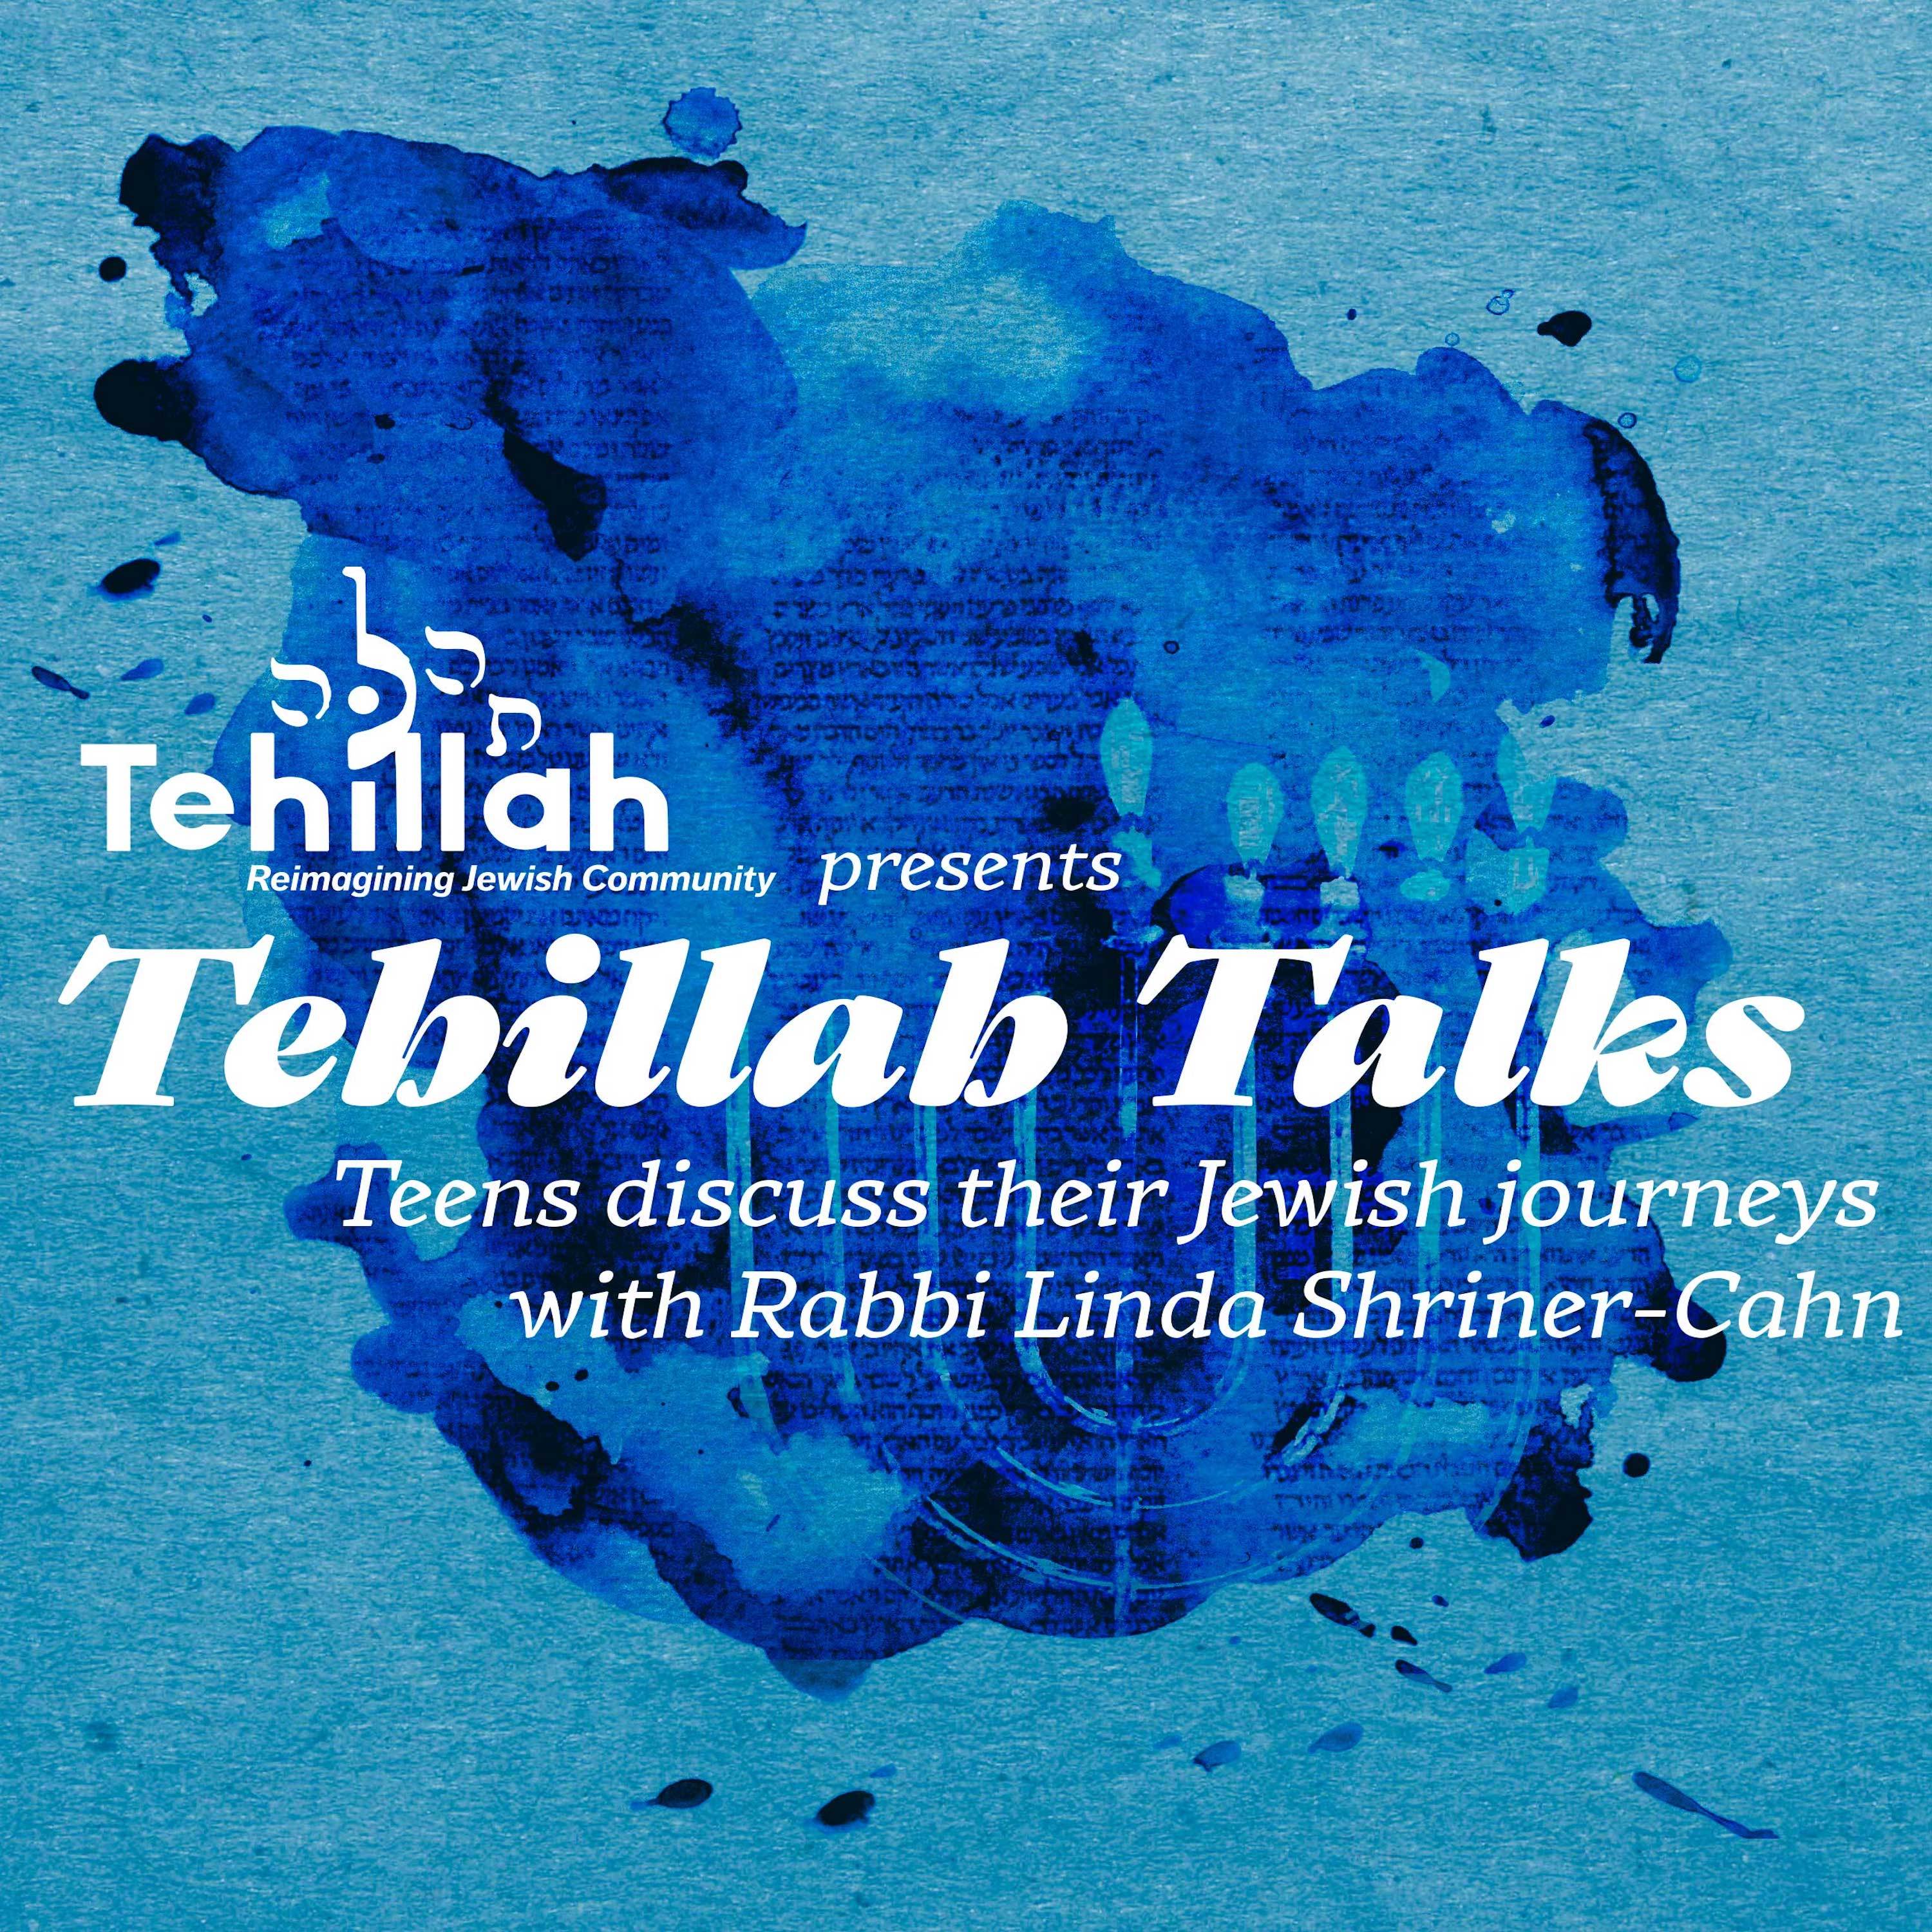 Tehillah Talks